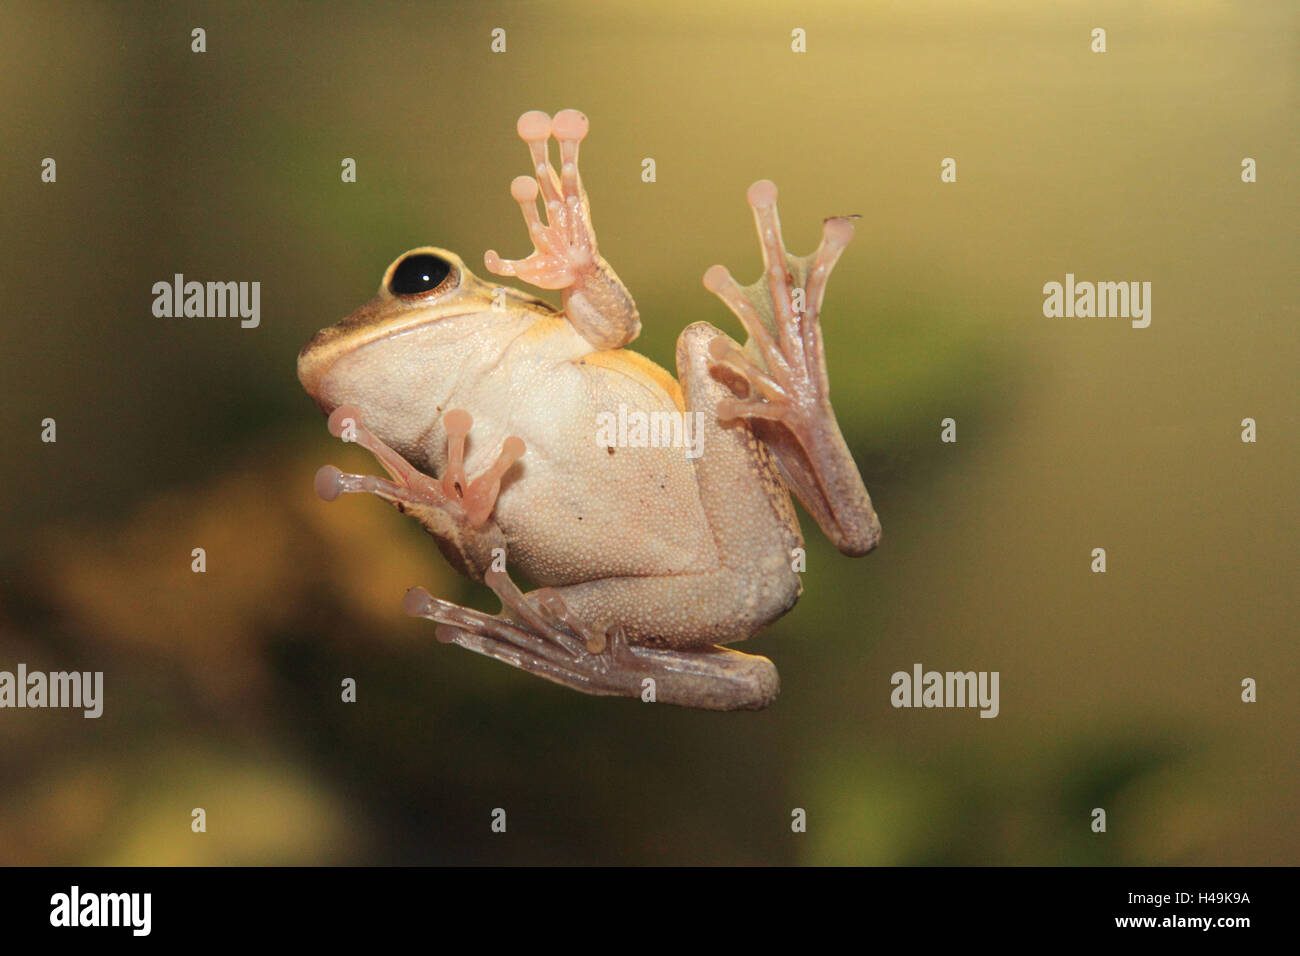 White beard oar frog, - Stock Image